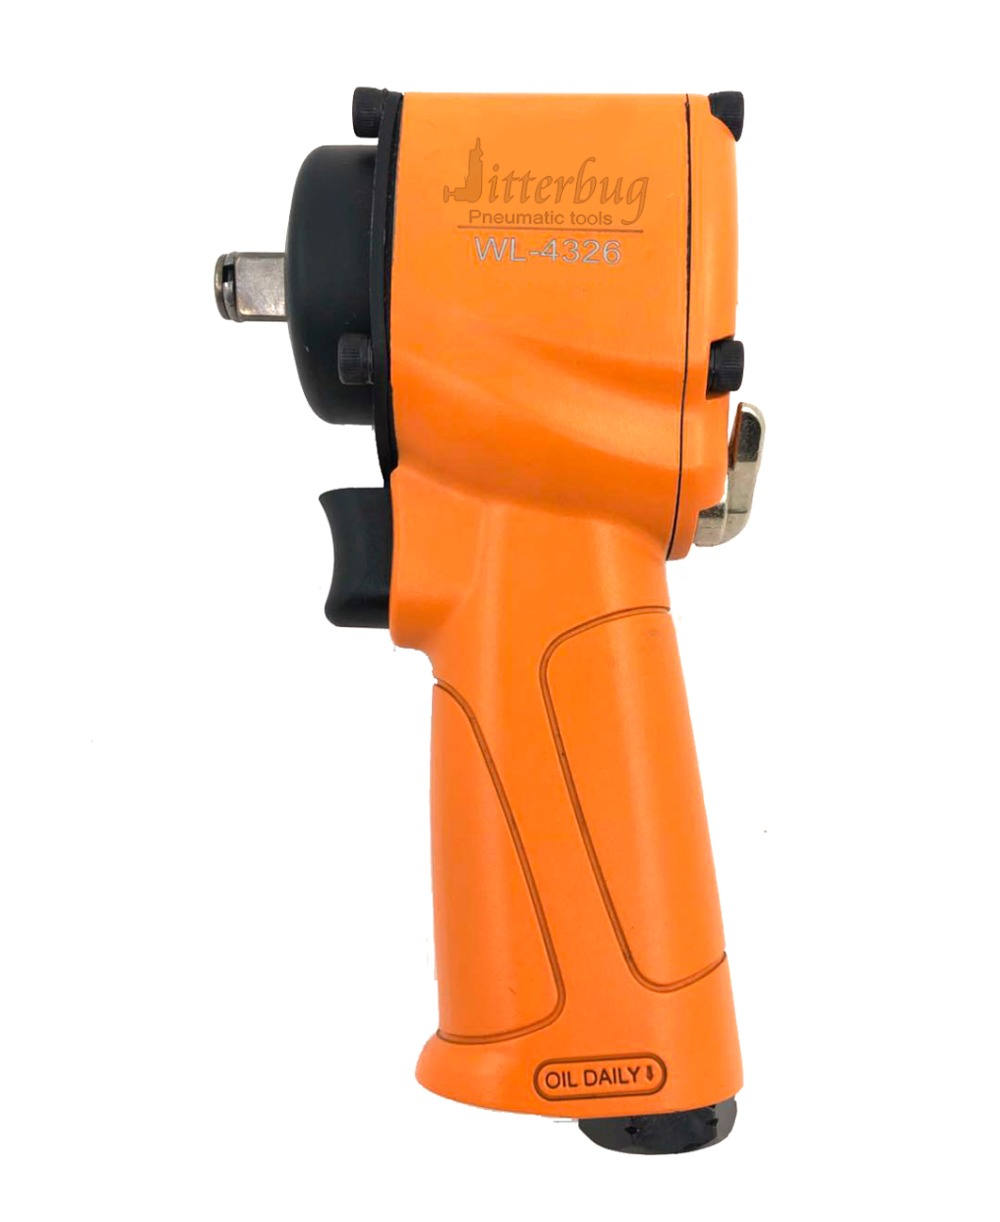 Jitterbug 1 2 Inch Mini Pneumatic Air Impact Wrench Car Repairing Cars